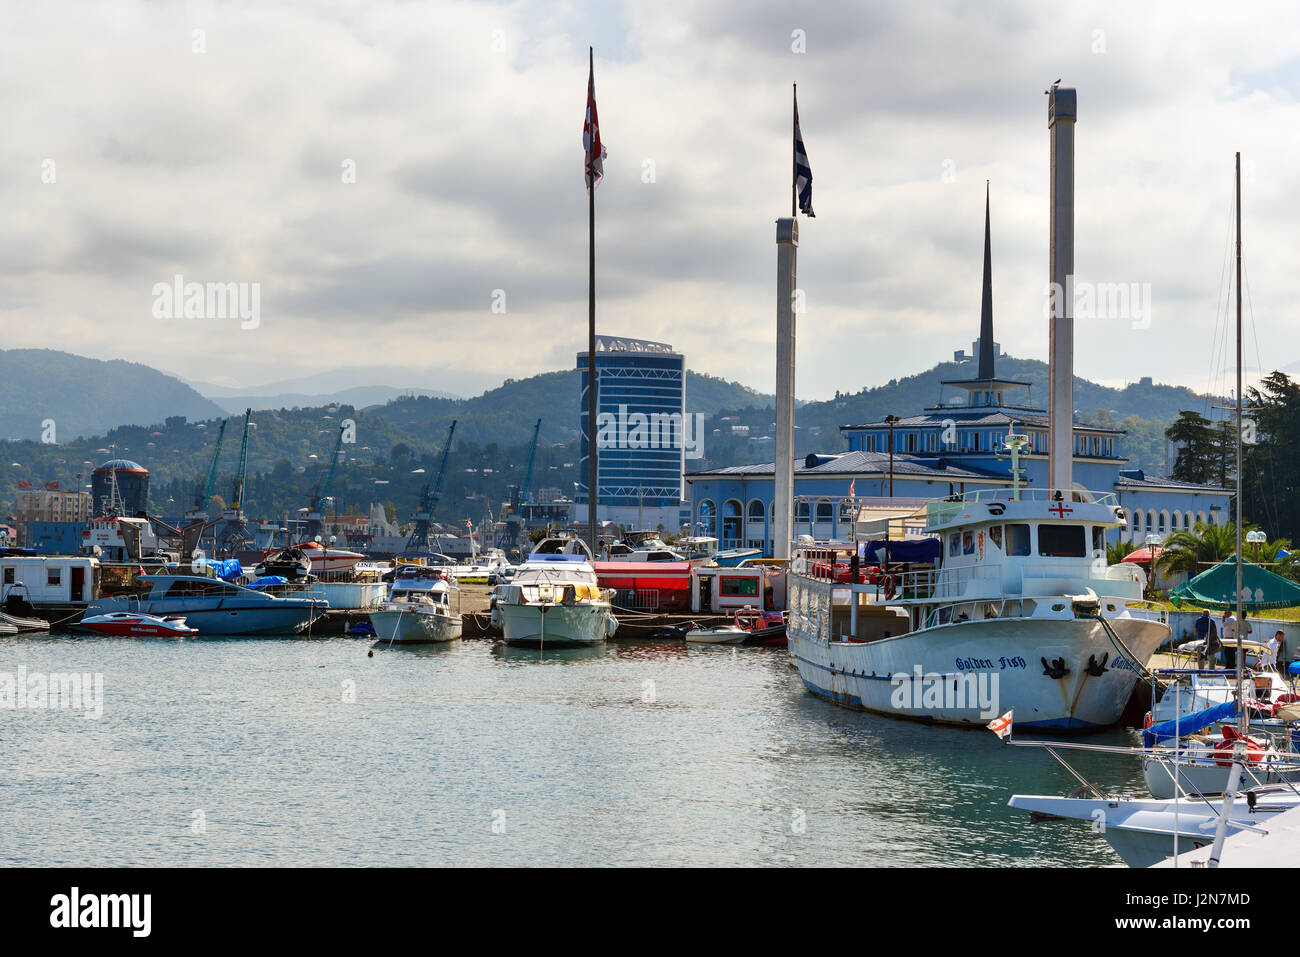 Batumi, Georgia - October 04, 2016: Tourist port is full of boats for fishing and sea trips - Stock Image